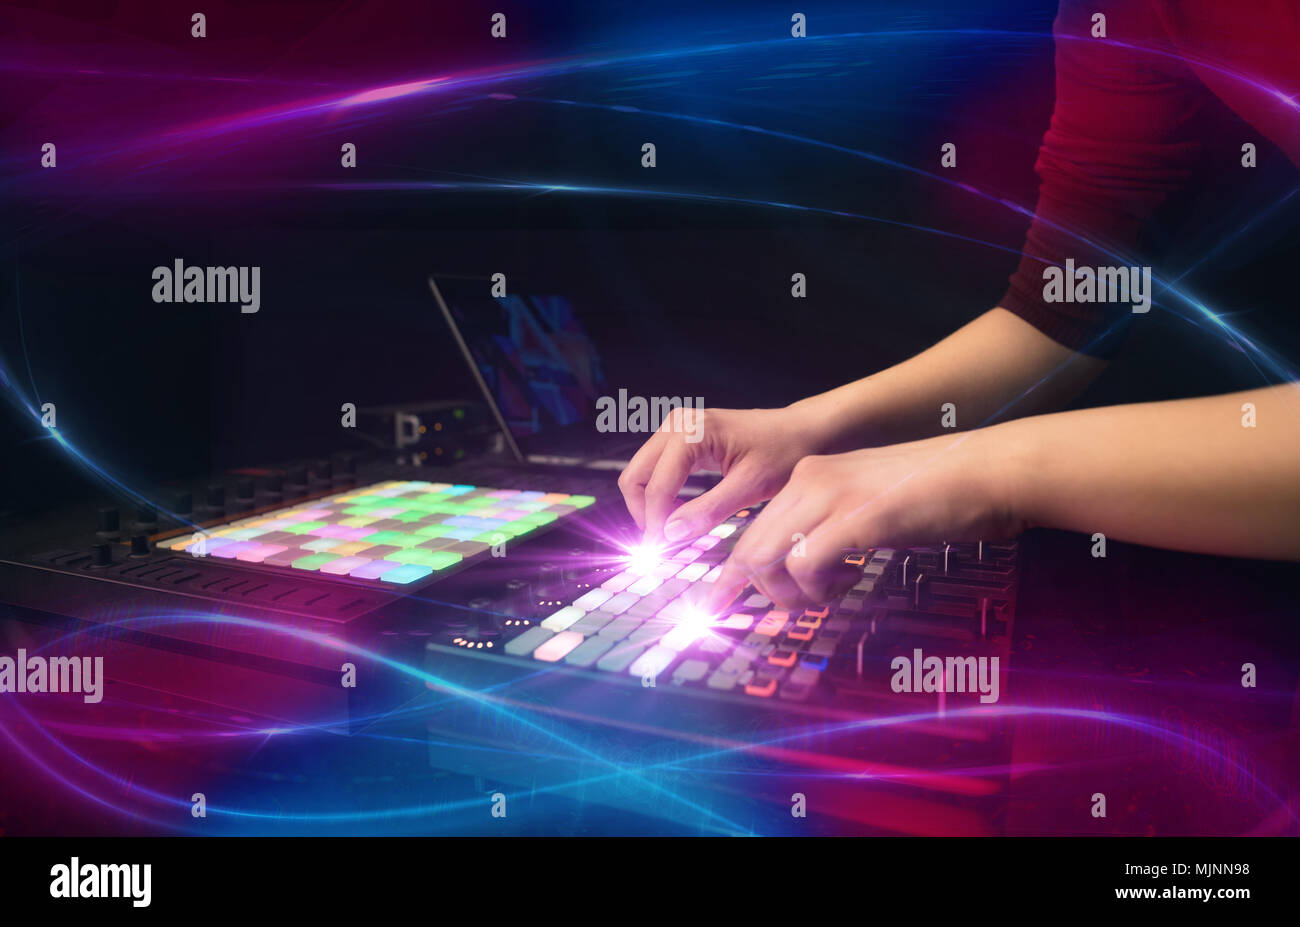 Hand mixing music on djcontroller with wave vibe concept - Stock Image